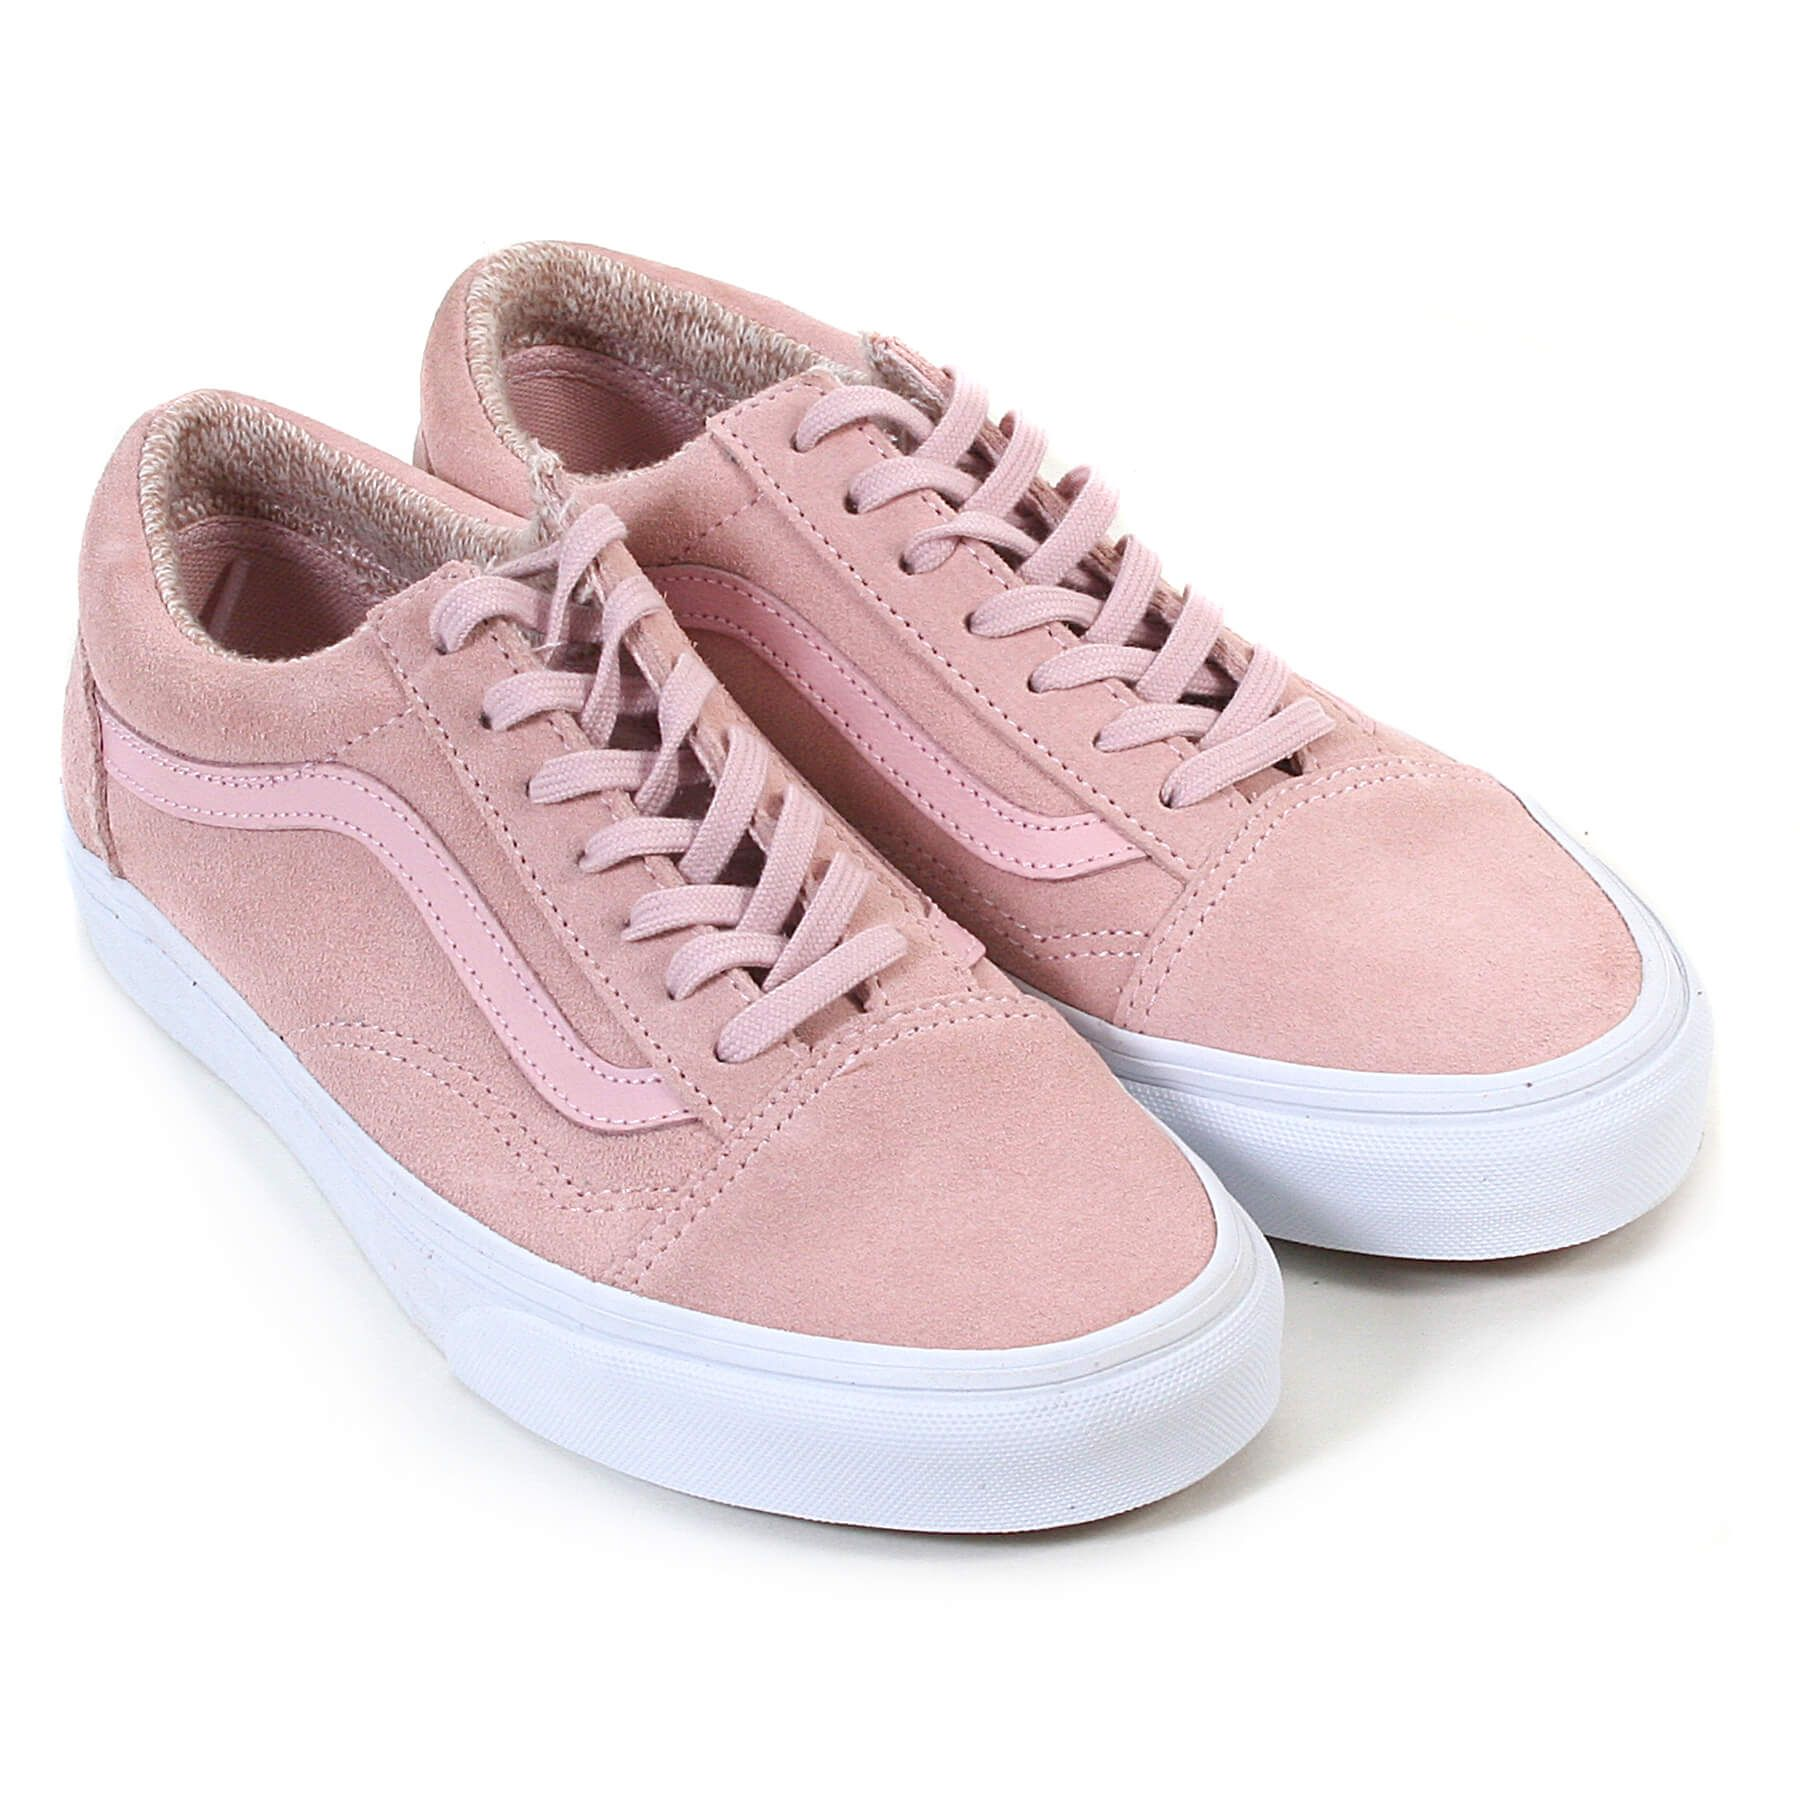 Vans Women's Old Skool Suede Lace Up Trainer Peach Skin